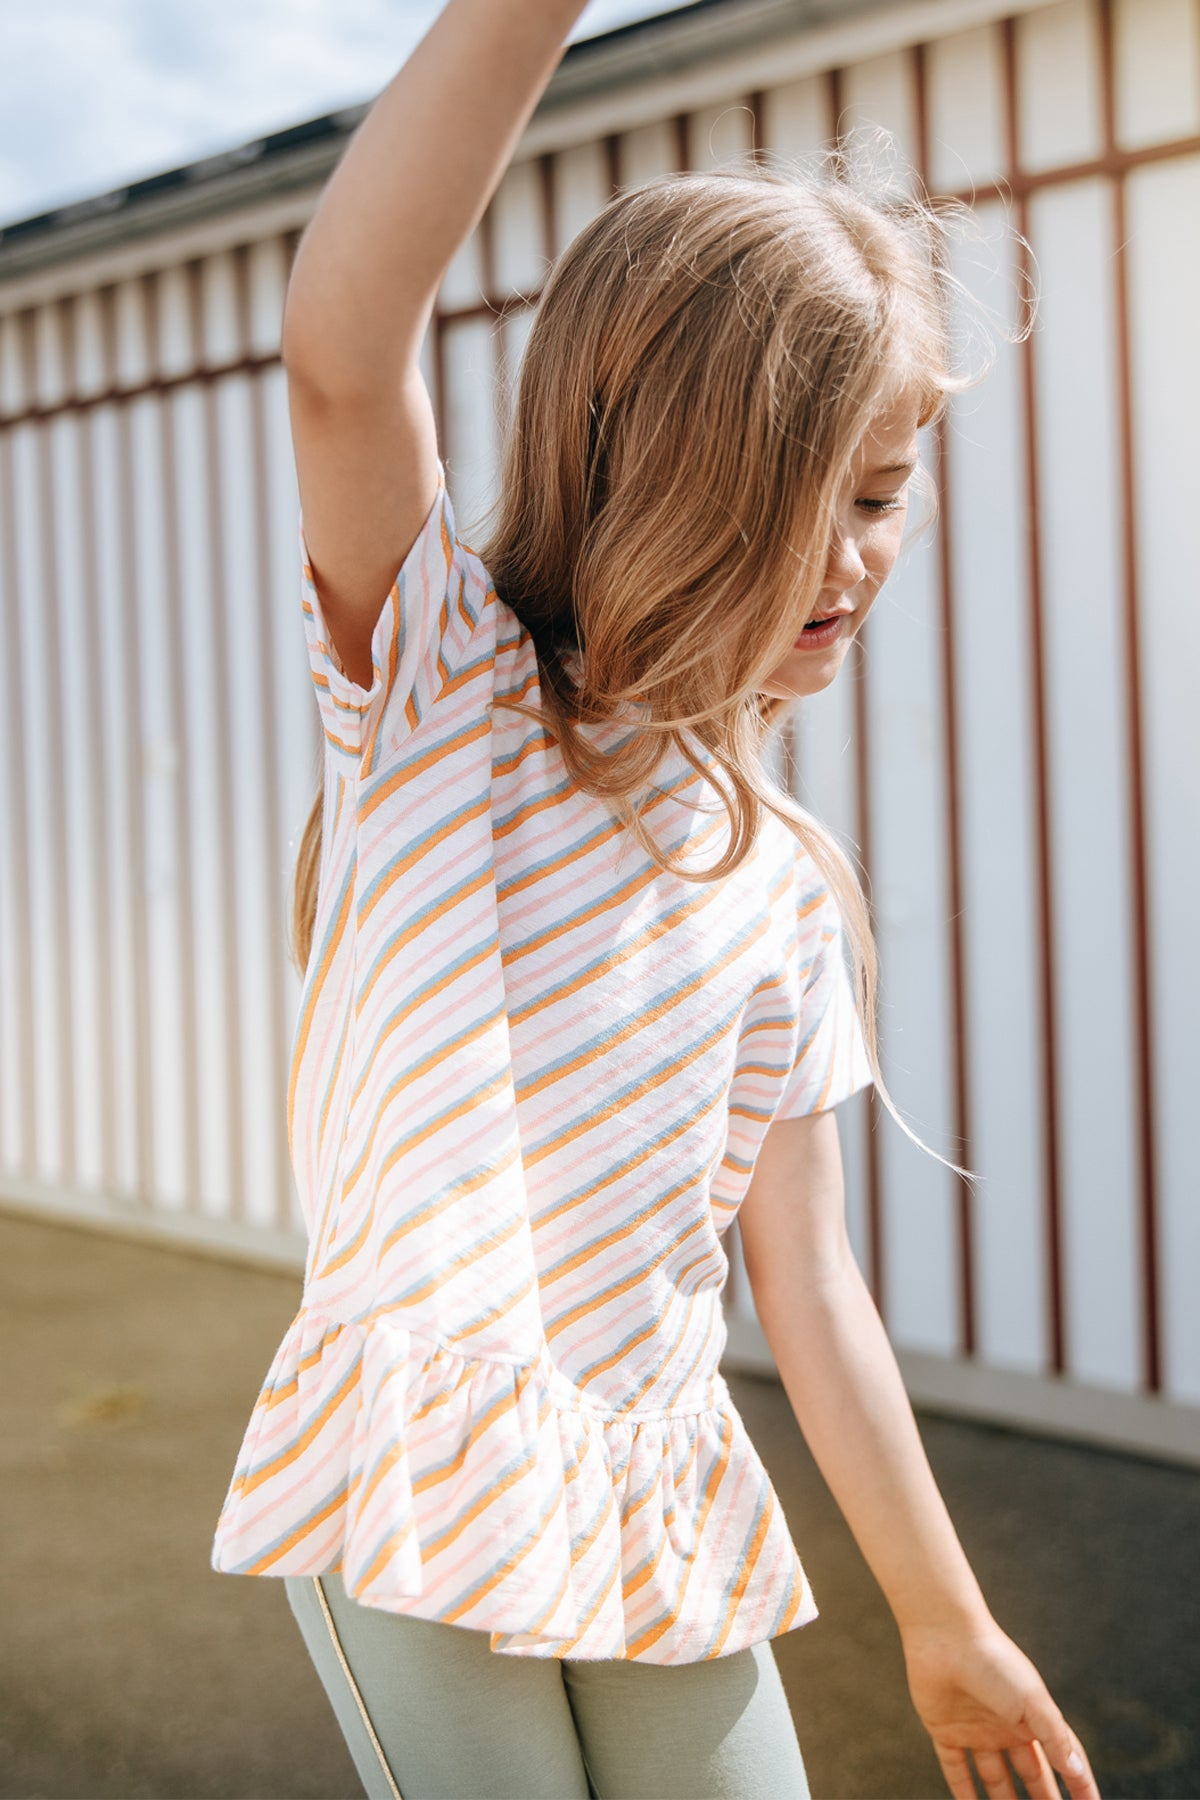 Soft Gallery Acey Girls Top